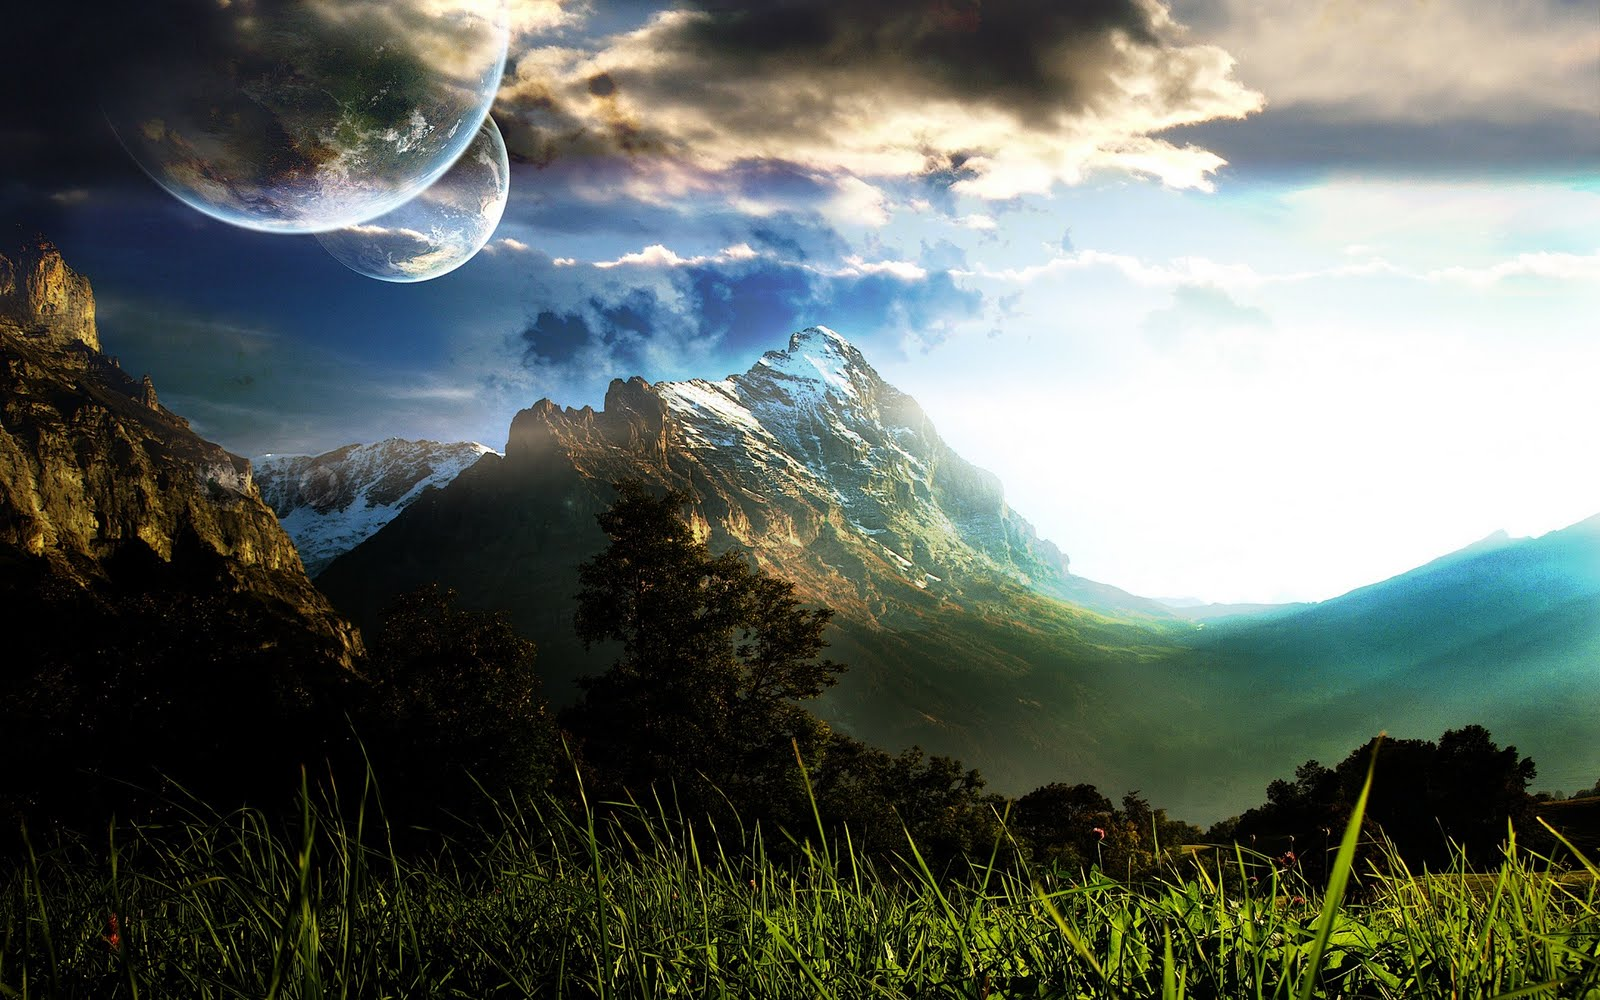 Most Amazing Full HD Wallpapers Backgrounds Ever | Wallpaper view